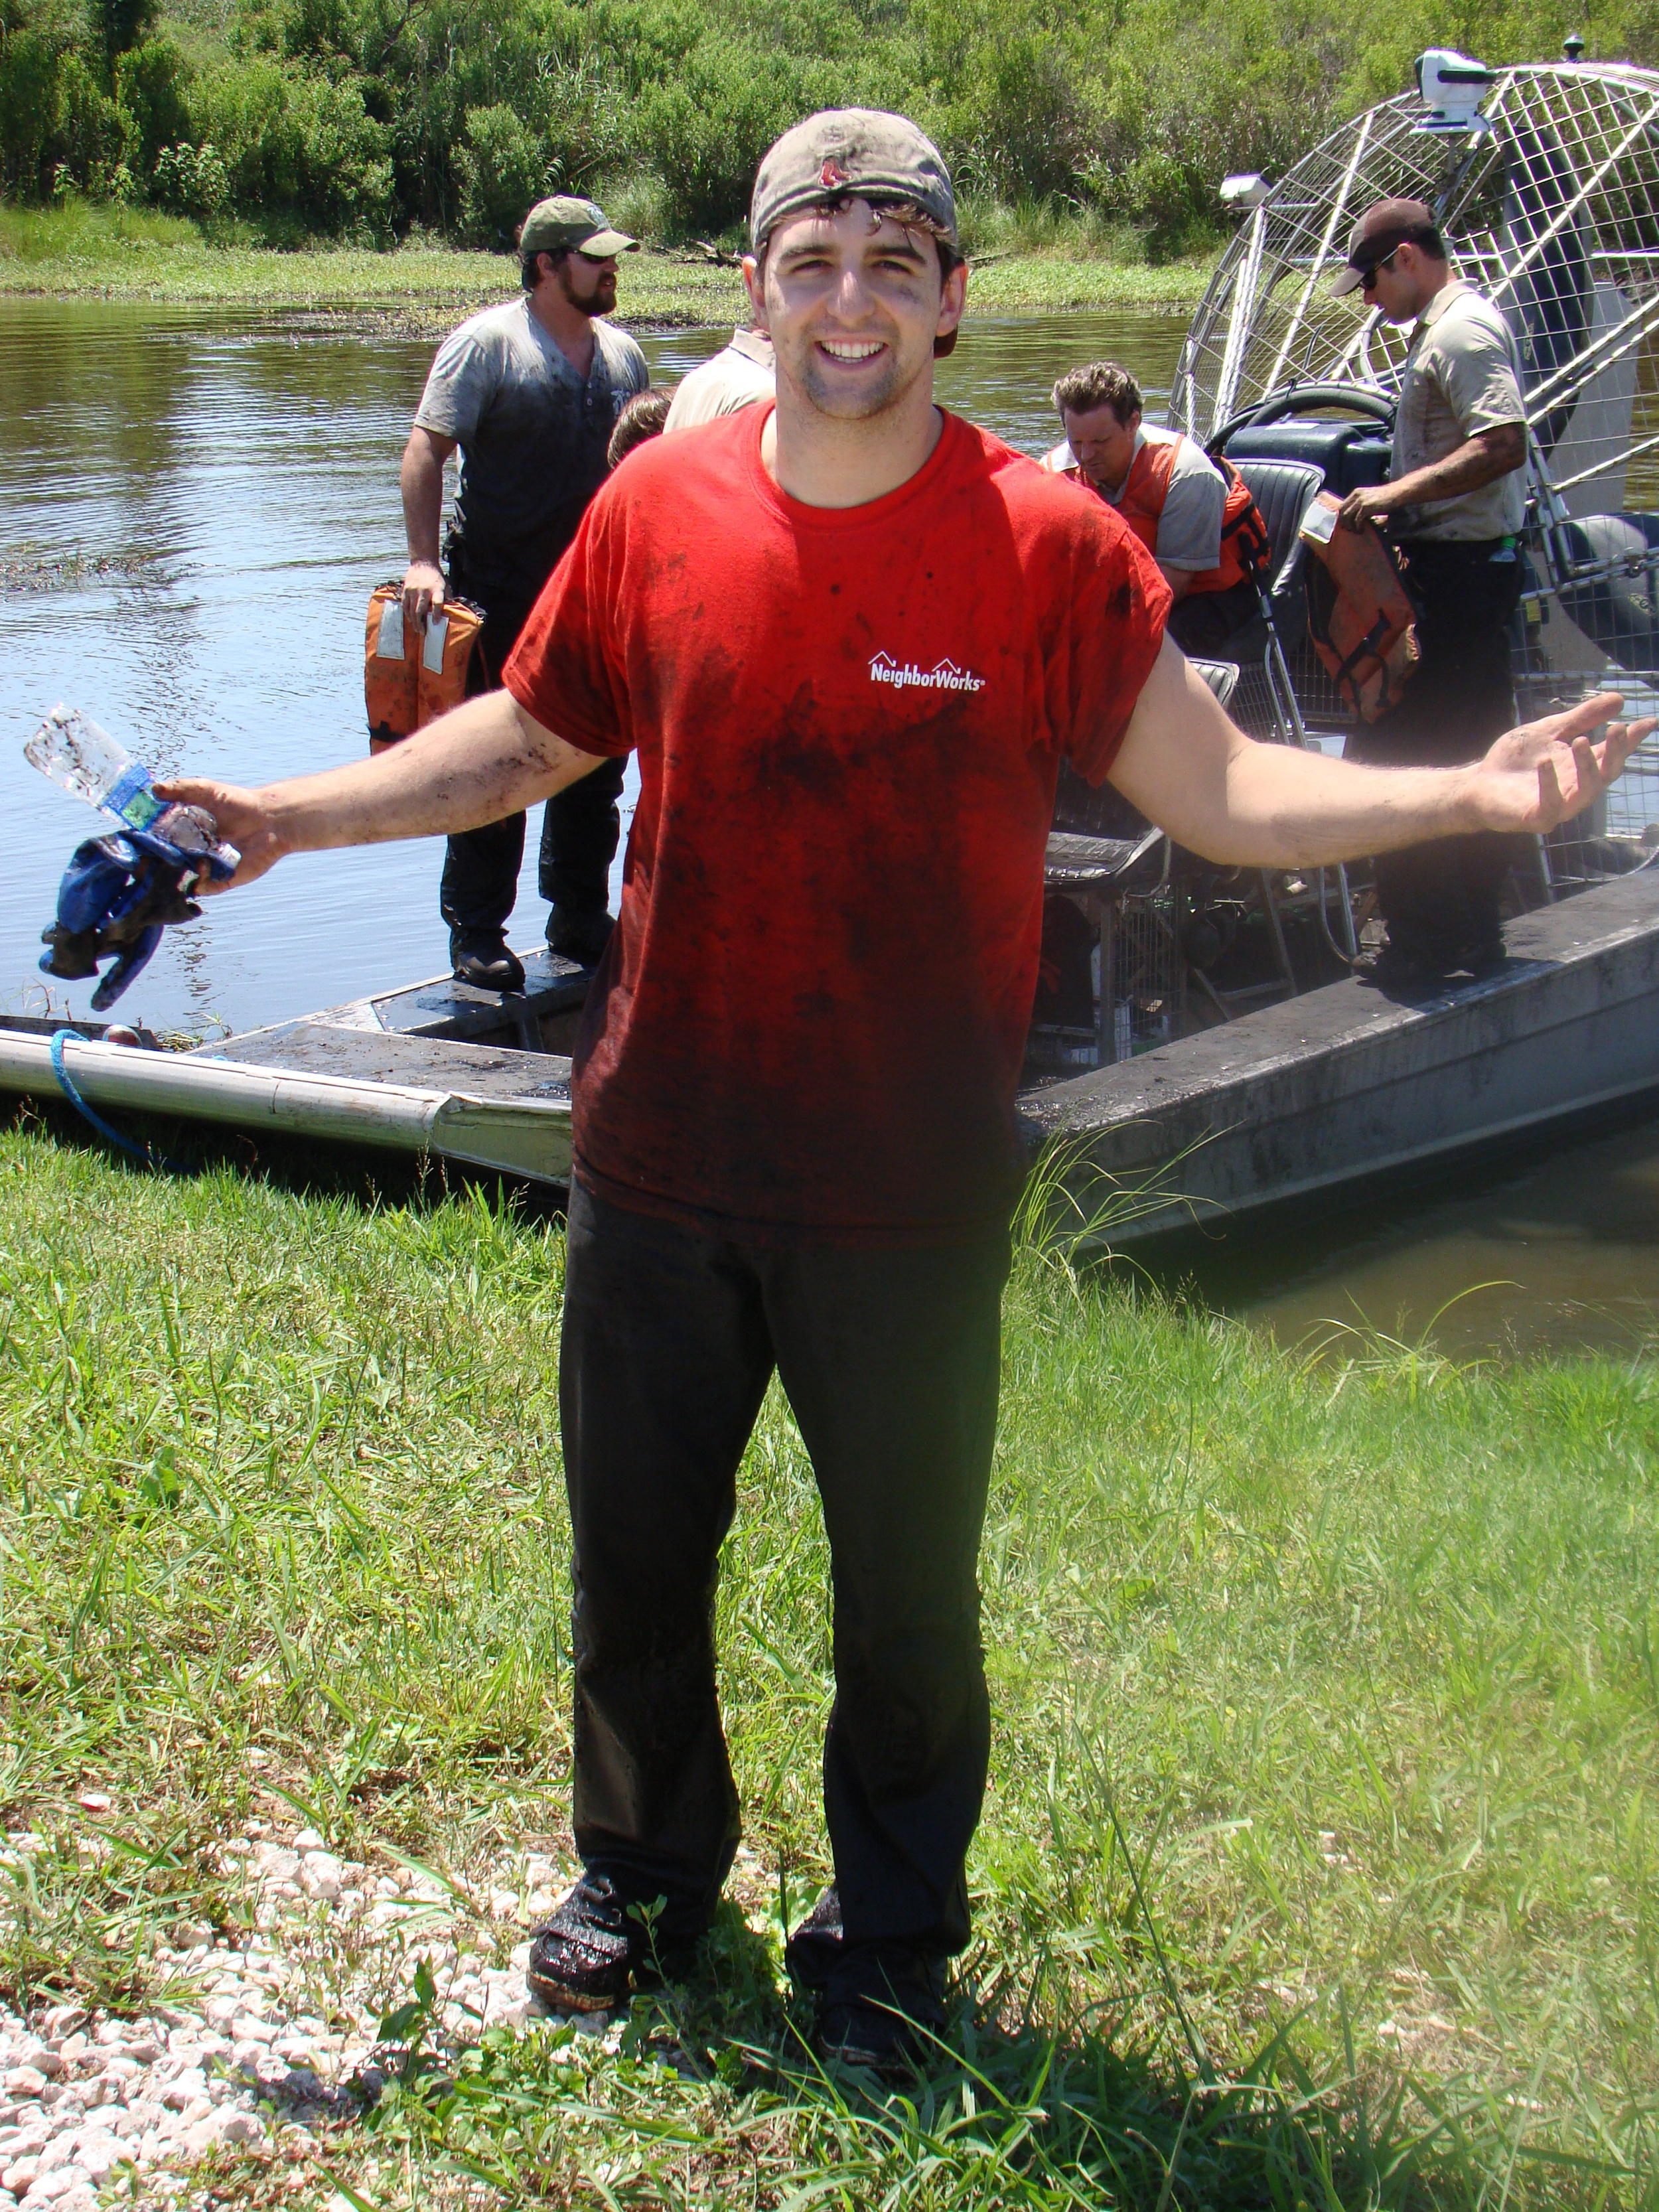 Covered in bayou mud, Global Green's Patrick Orr poses for the camera.